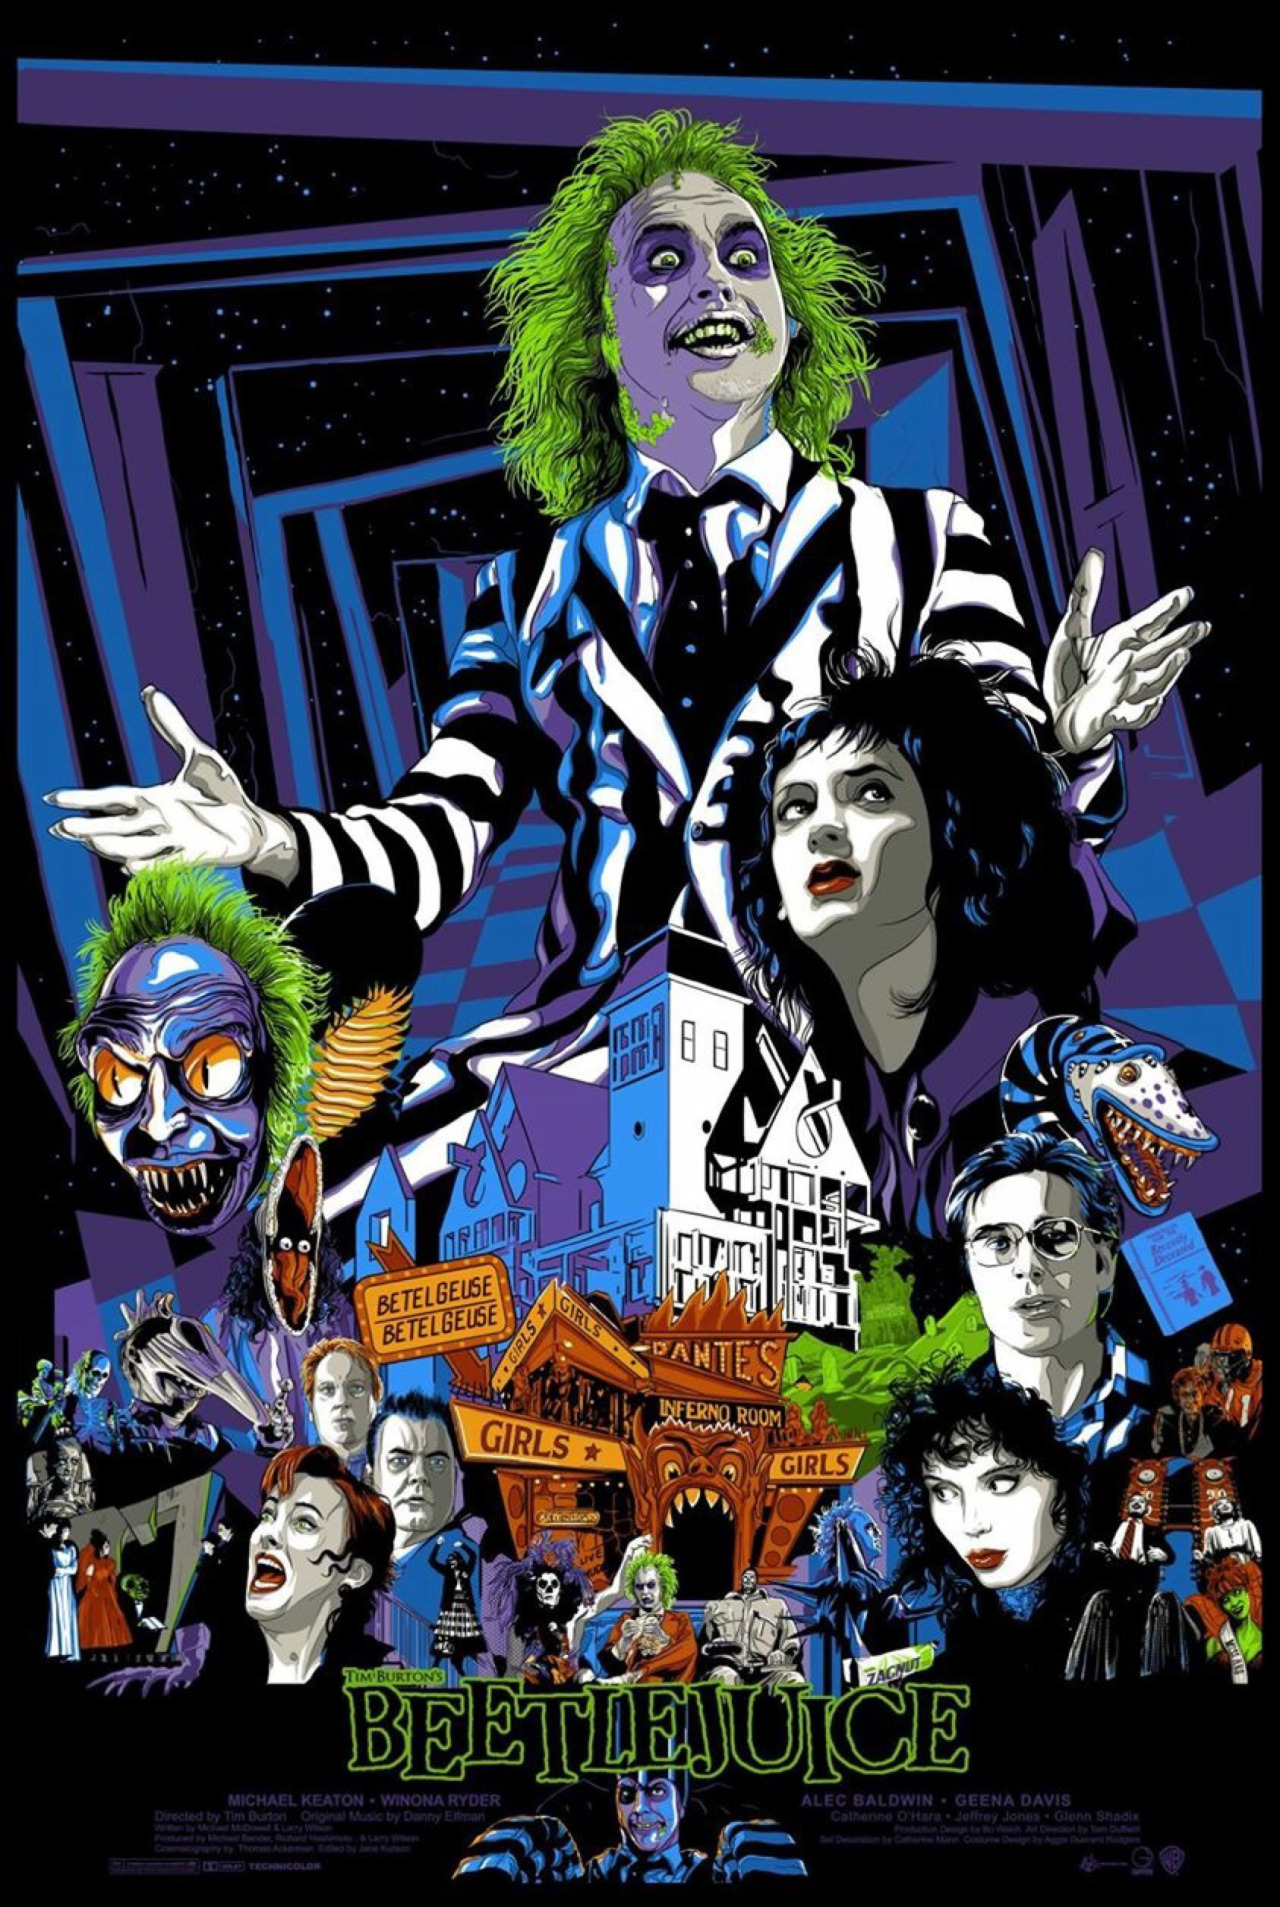 Beetlejuice: Lovely weirdos